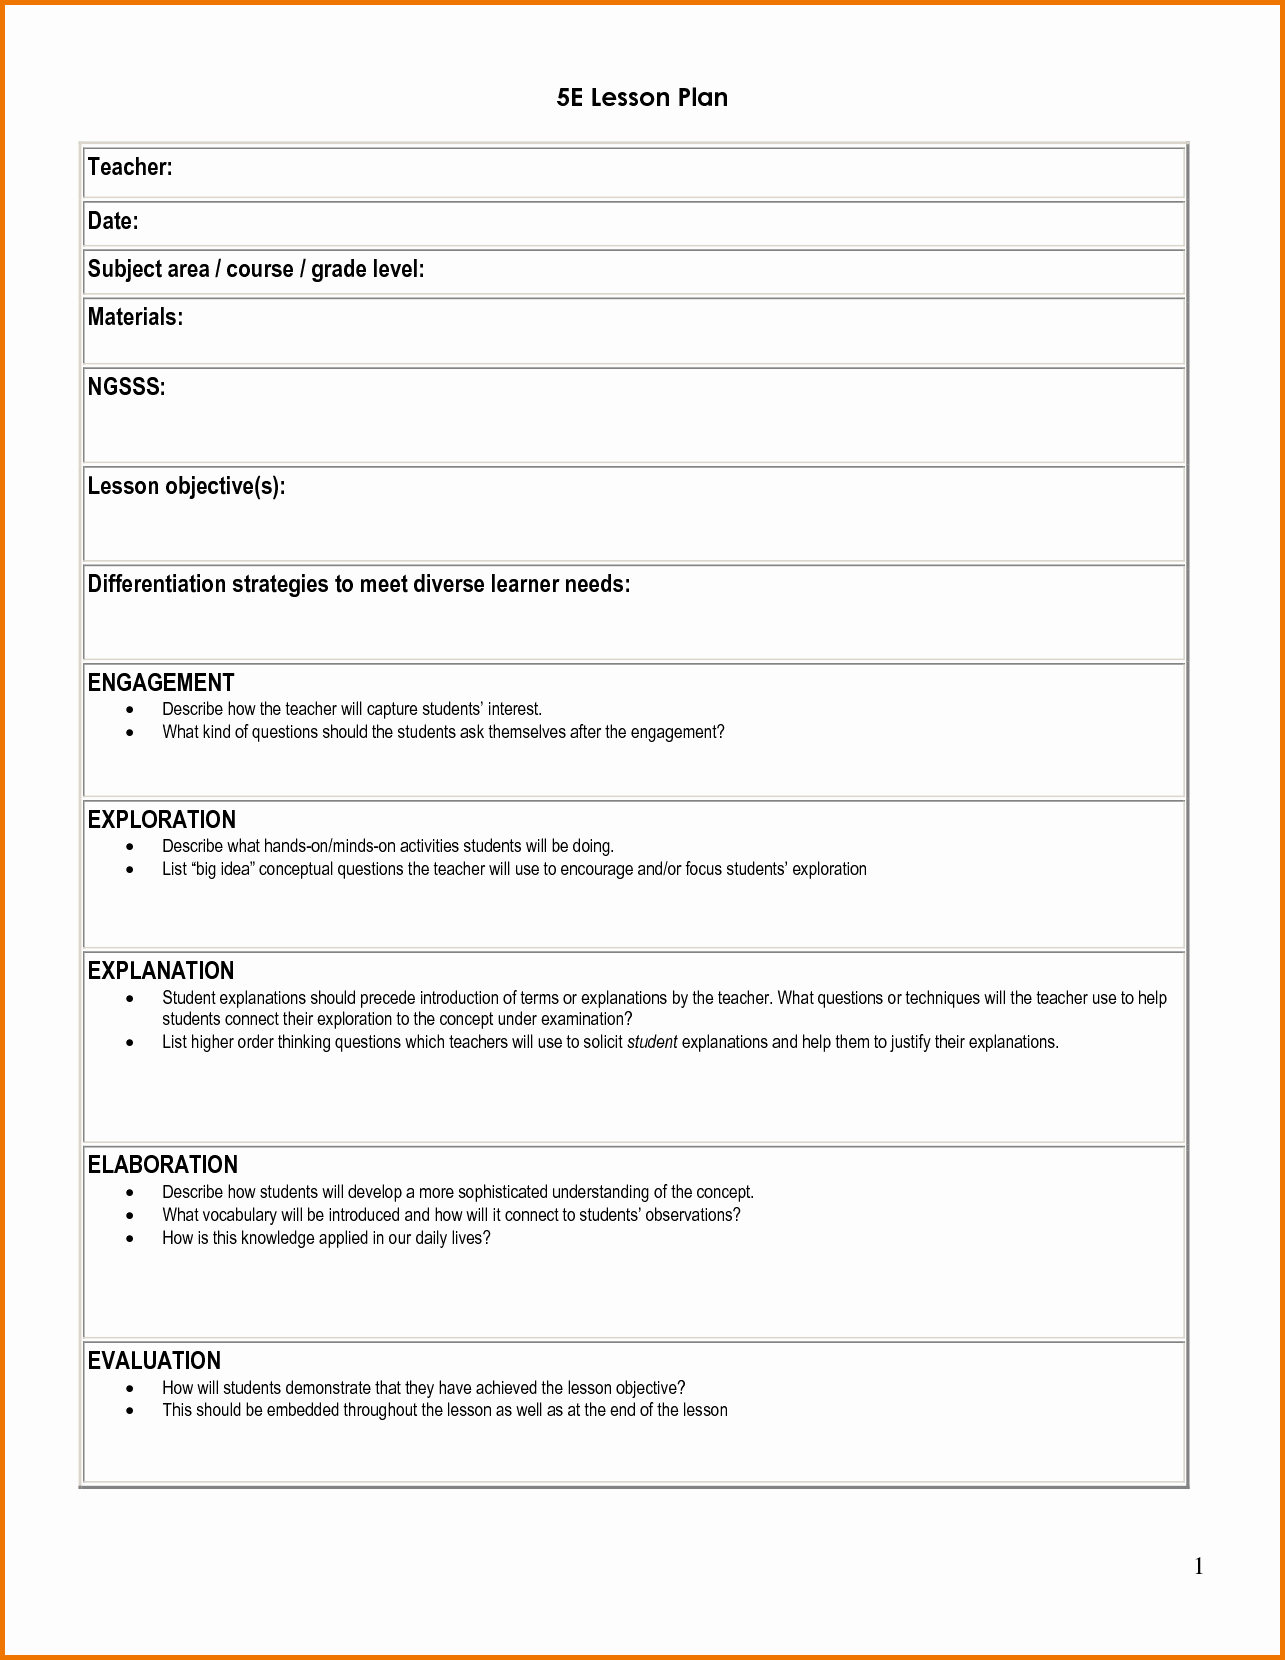 Science Lesson Plan Template Best Of 5e Student Lesson Planning Template Download as Doc